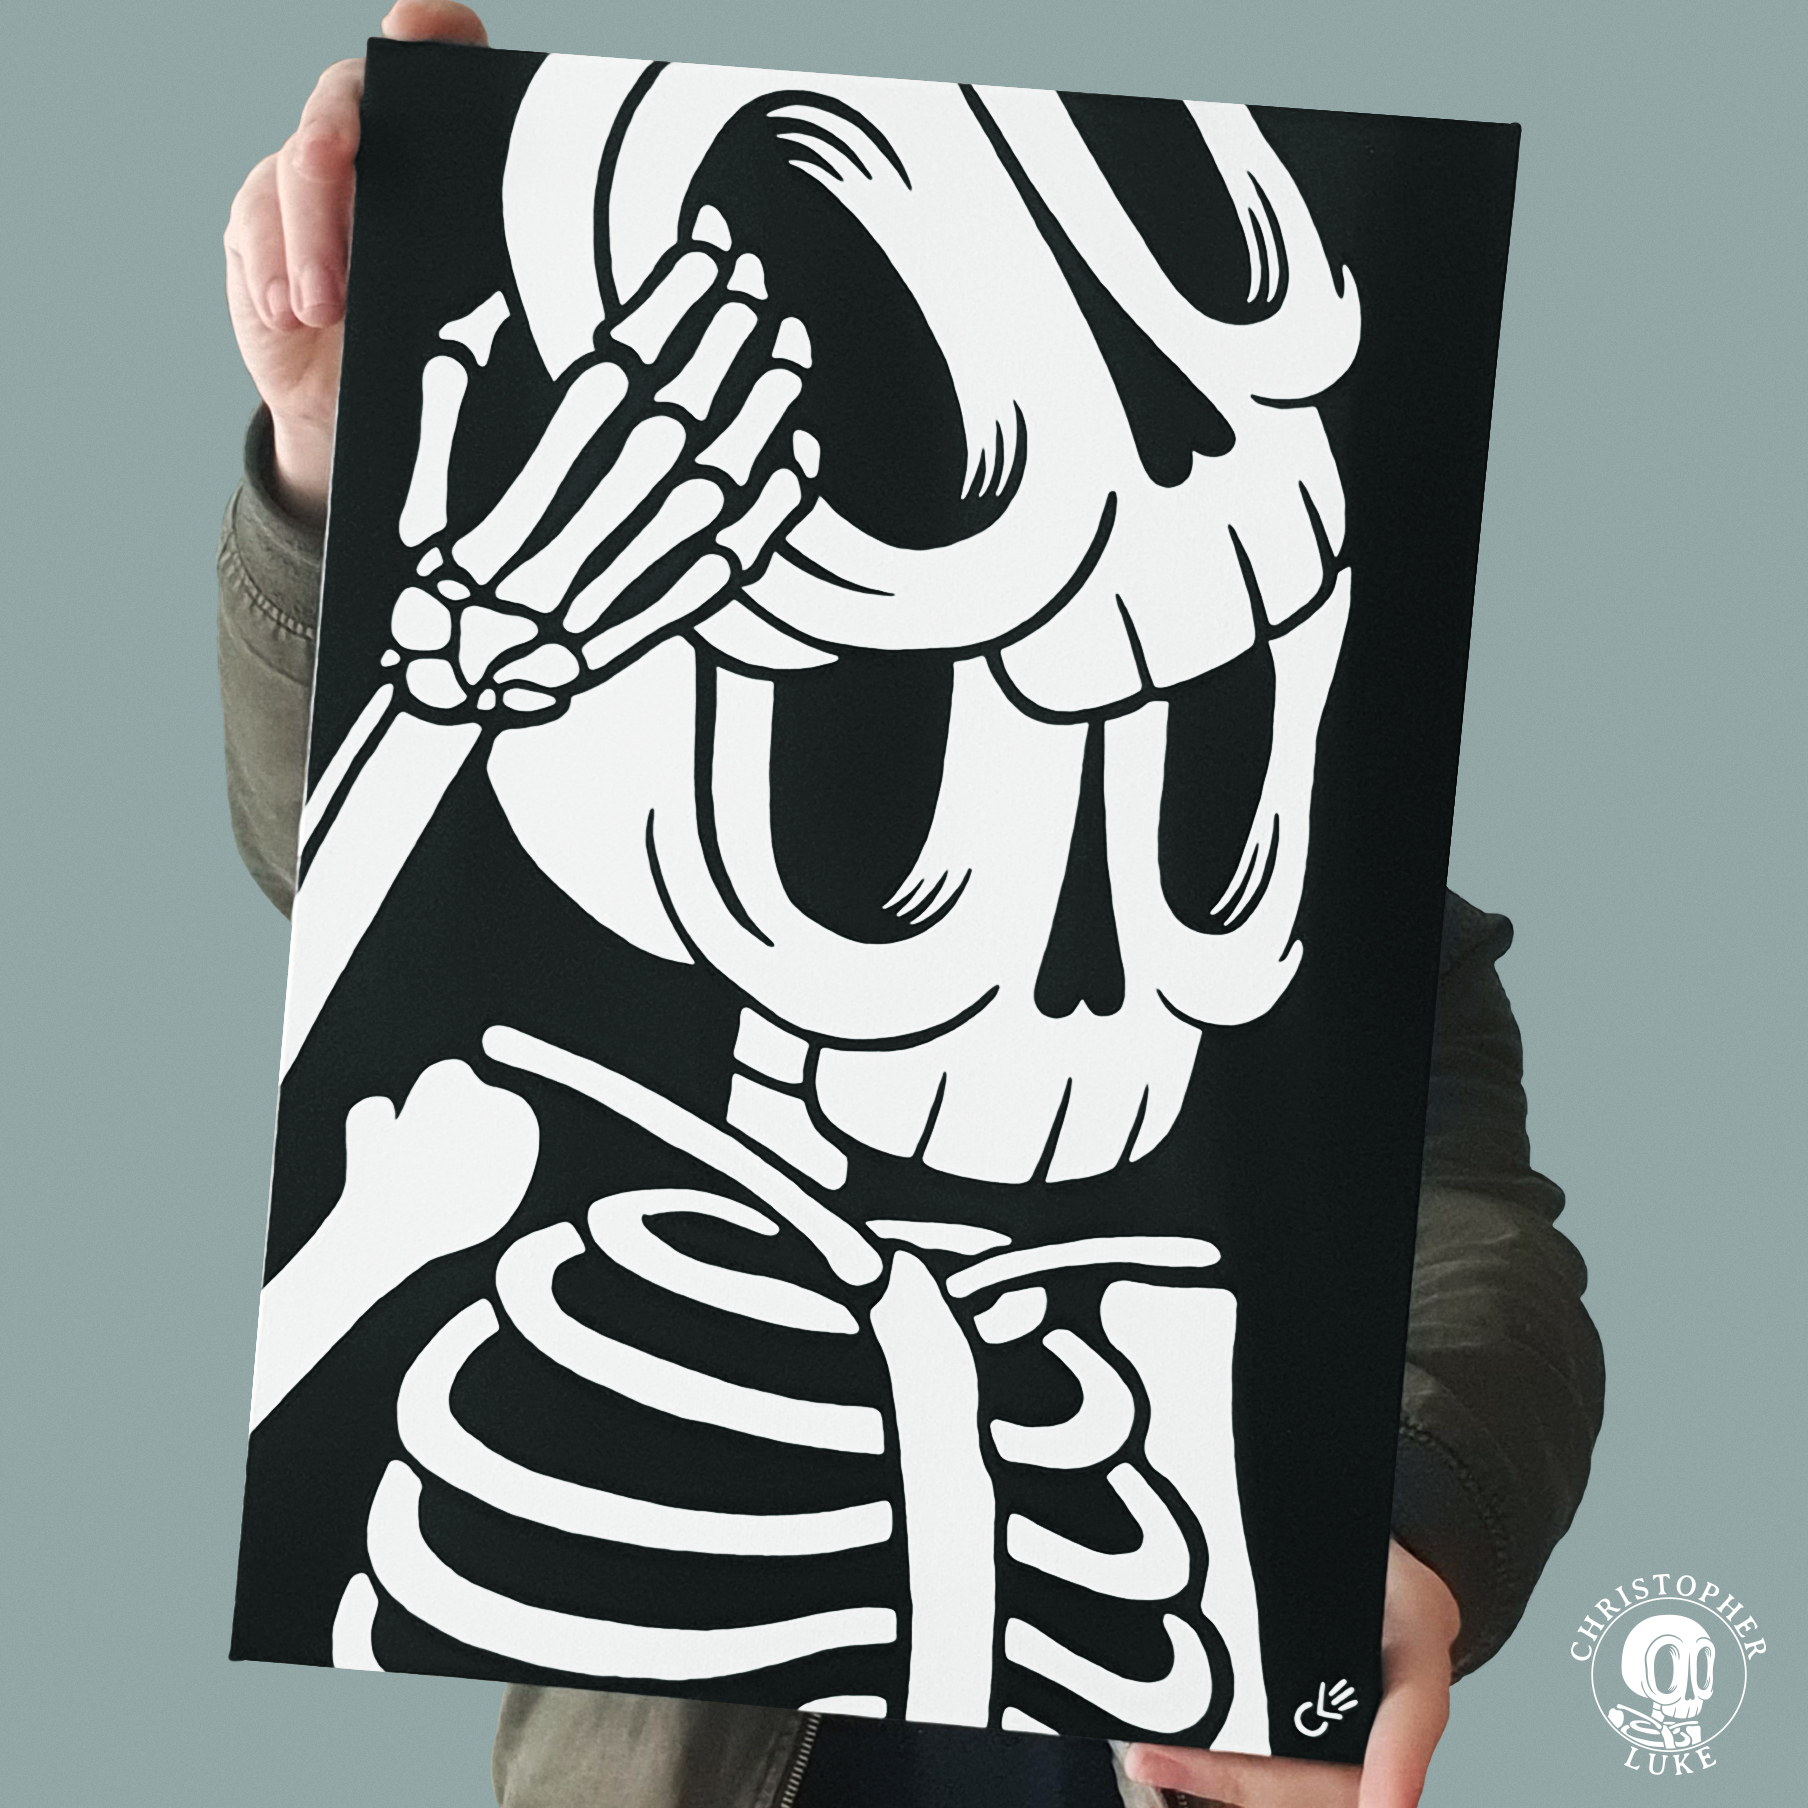 Black and white skeleton painting by Christopher Luke